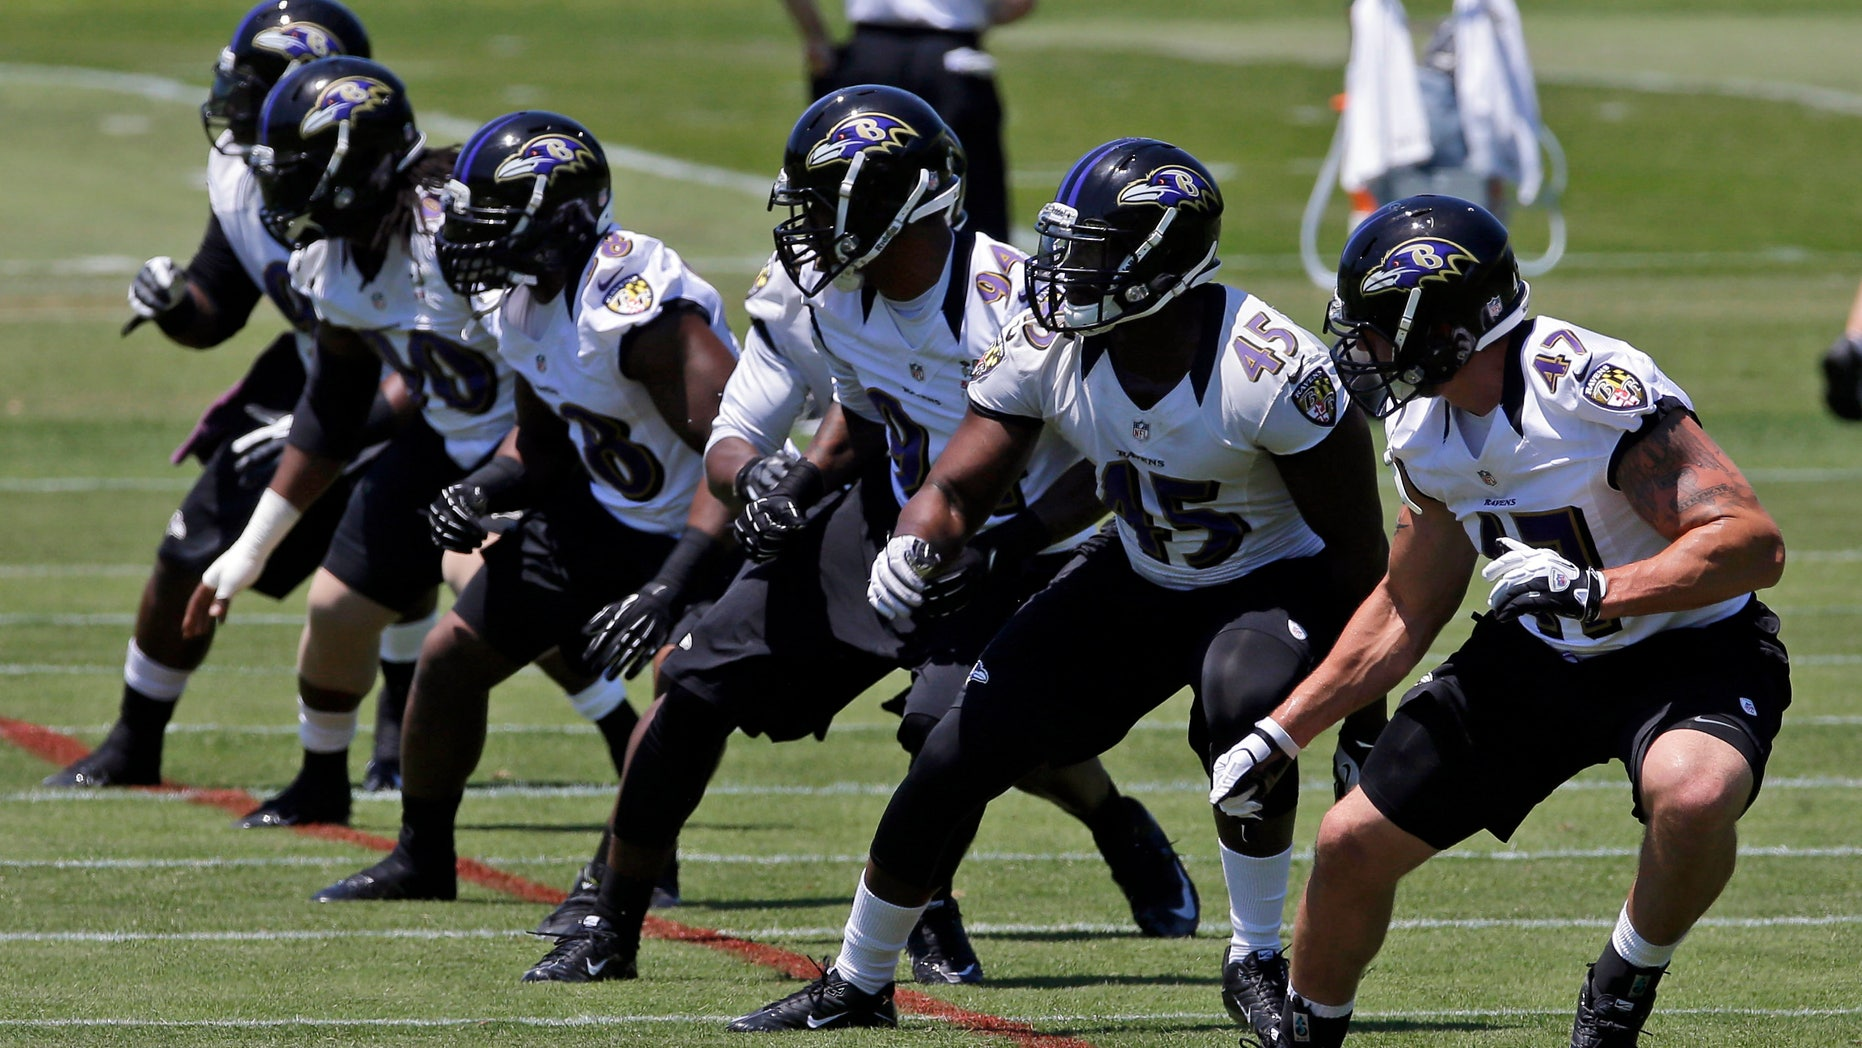 A group of Baltimore Ravens linebackers run a drill during NFL football practice at the team's training facility in Owings Mills, Md., Friday, May 31, 2013. (AP Photo/Patrick Semansky)